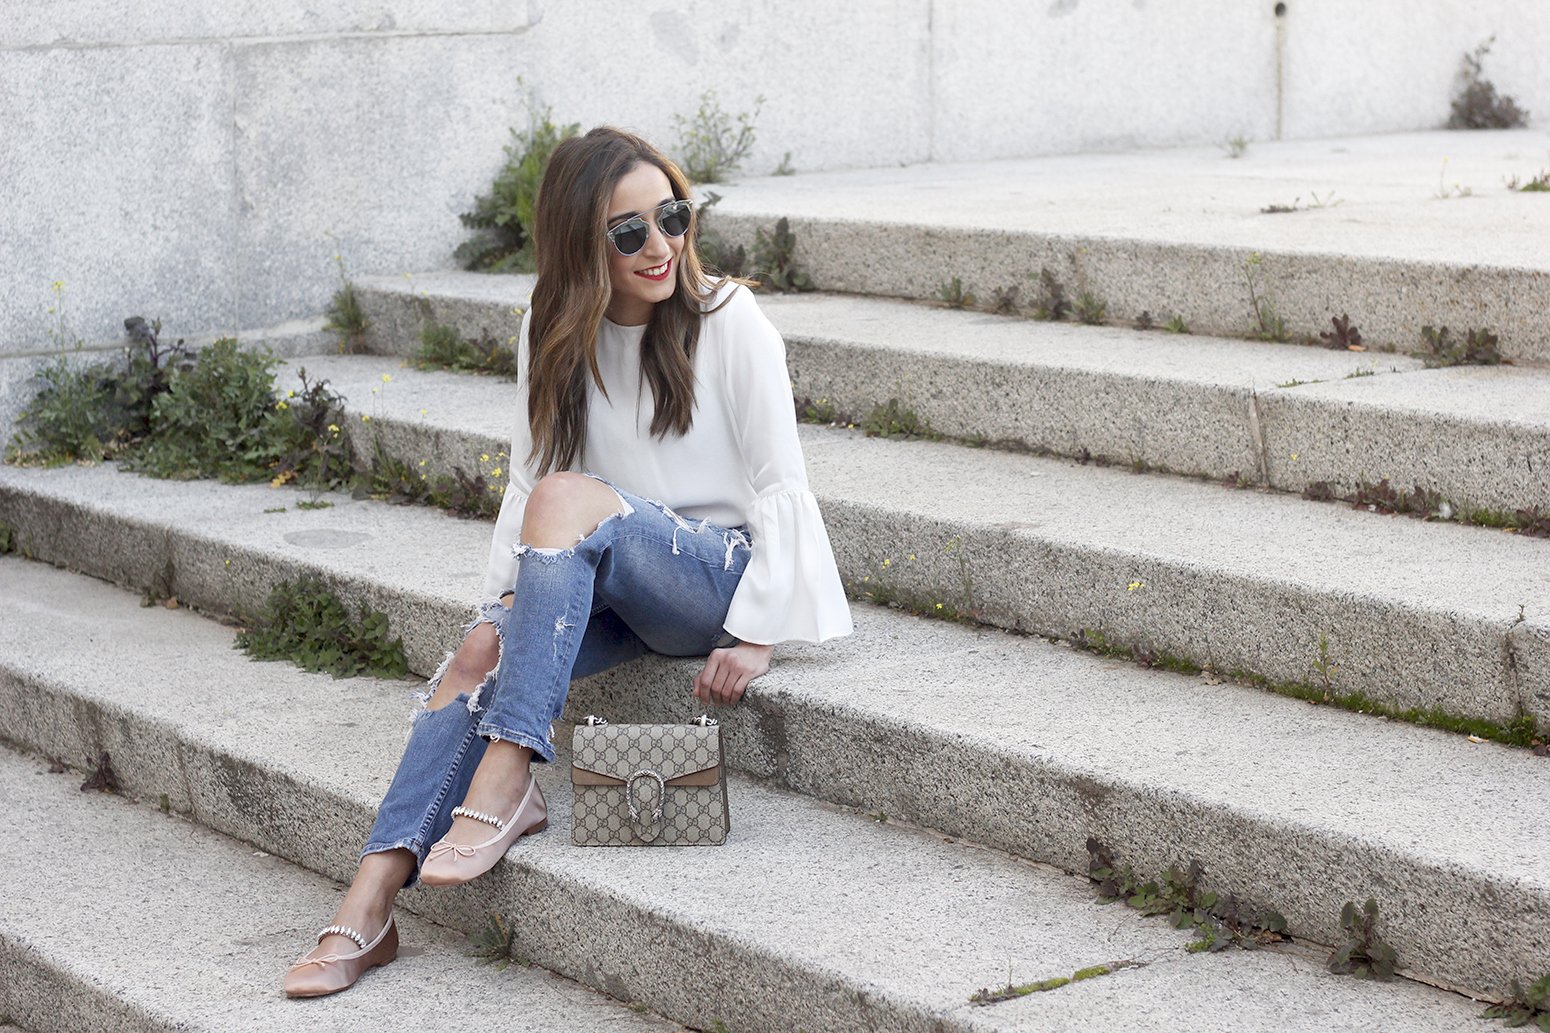 ripped keans gucci bag Jewel ballerinas uterqüe white blouse outfit style fashion13